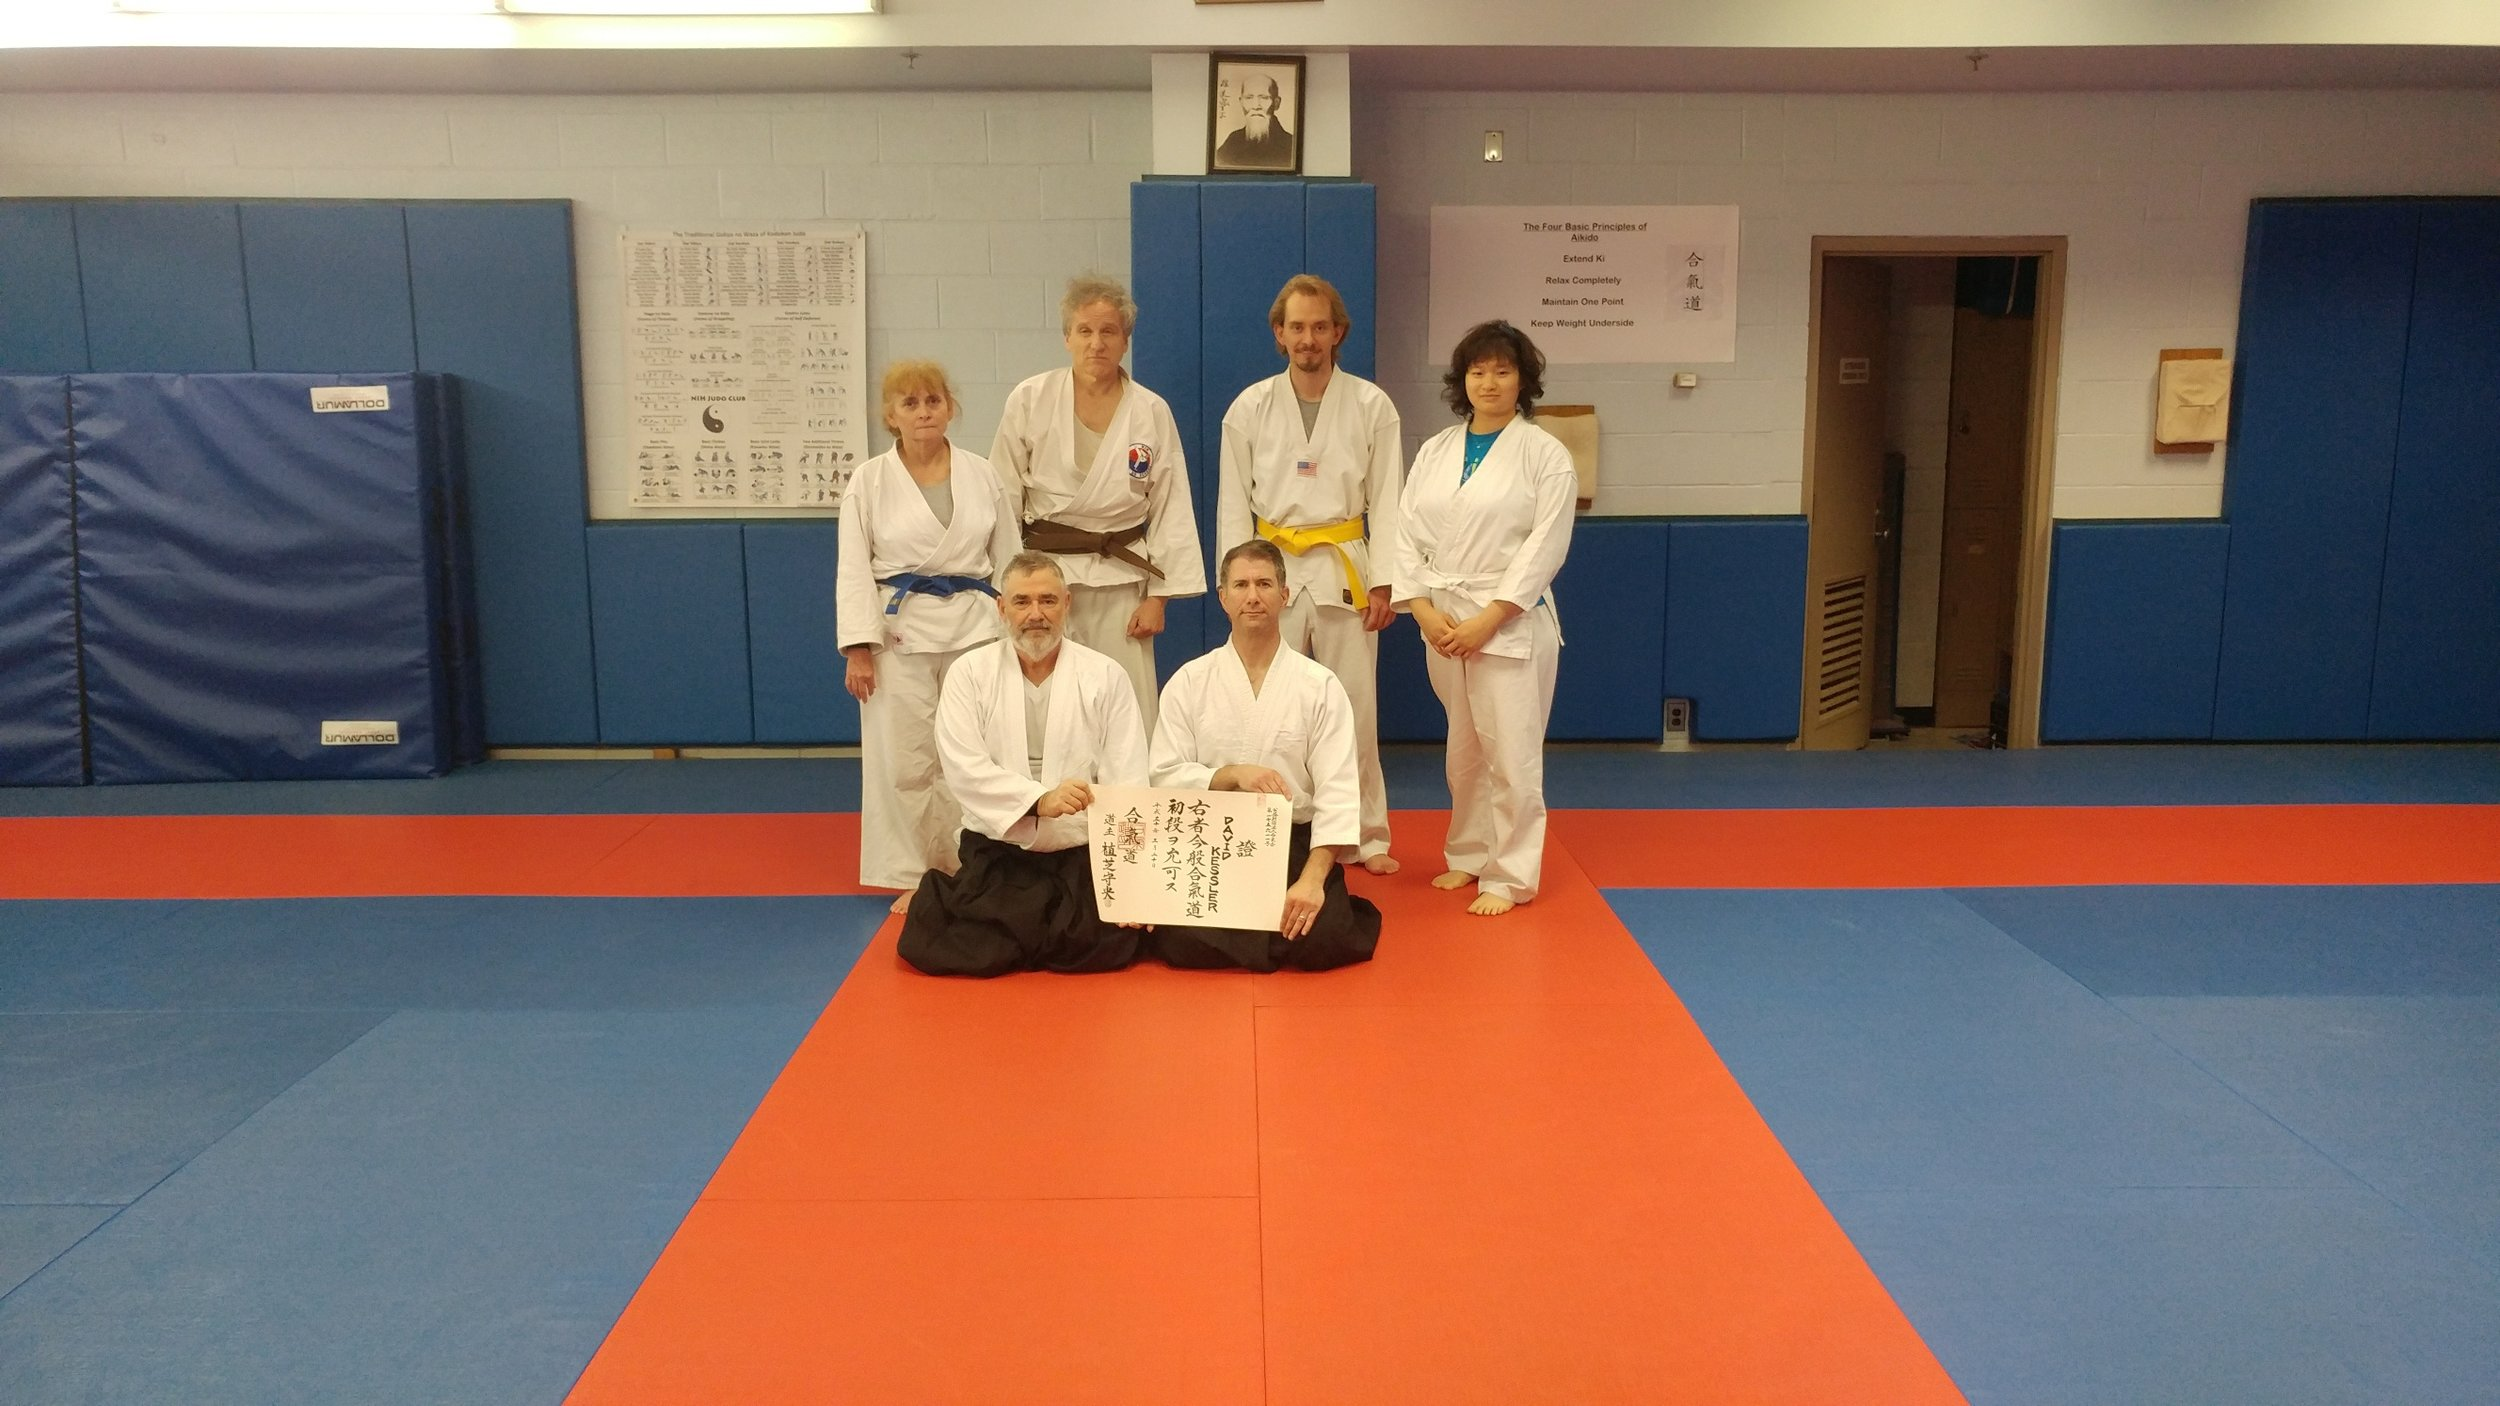 Congratulations to David Kessler. On June 30, 2018 he received his Shodan certificate after successfully completing the Shodan exam in January.